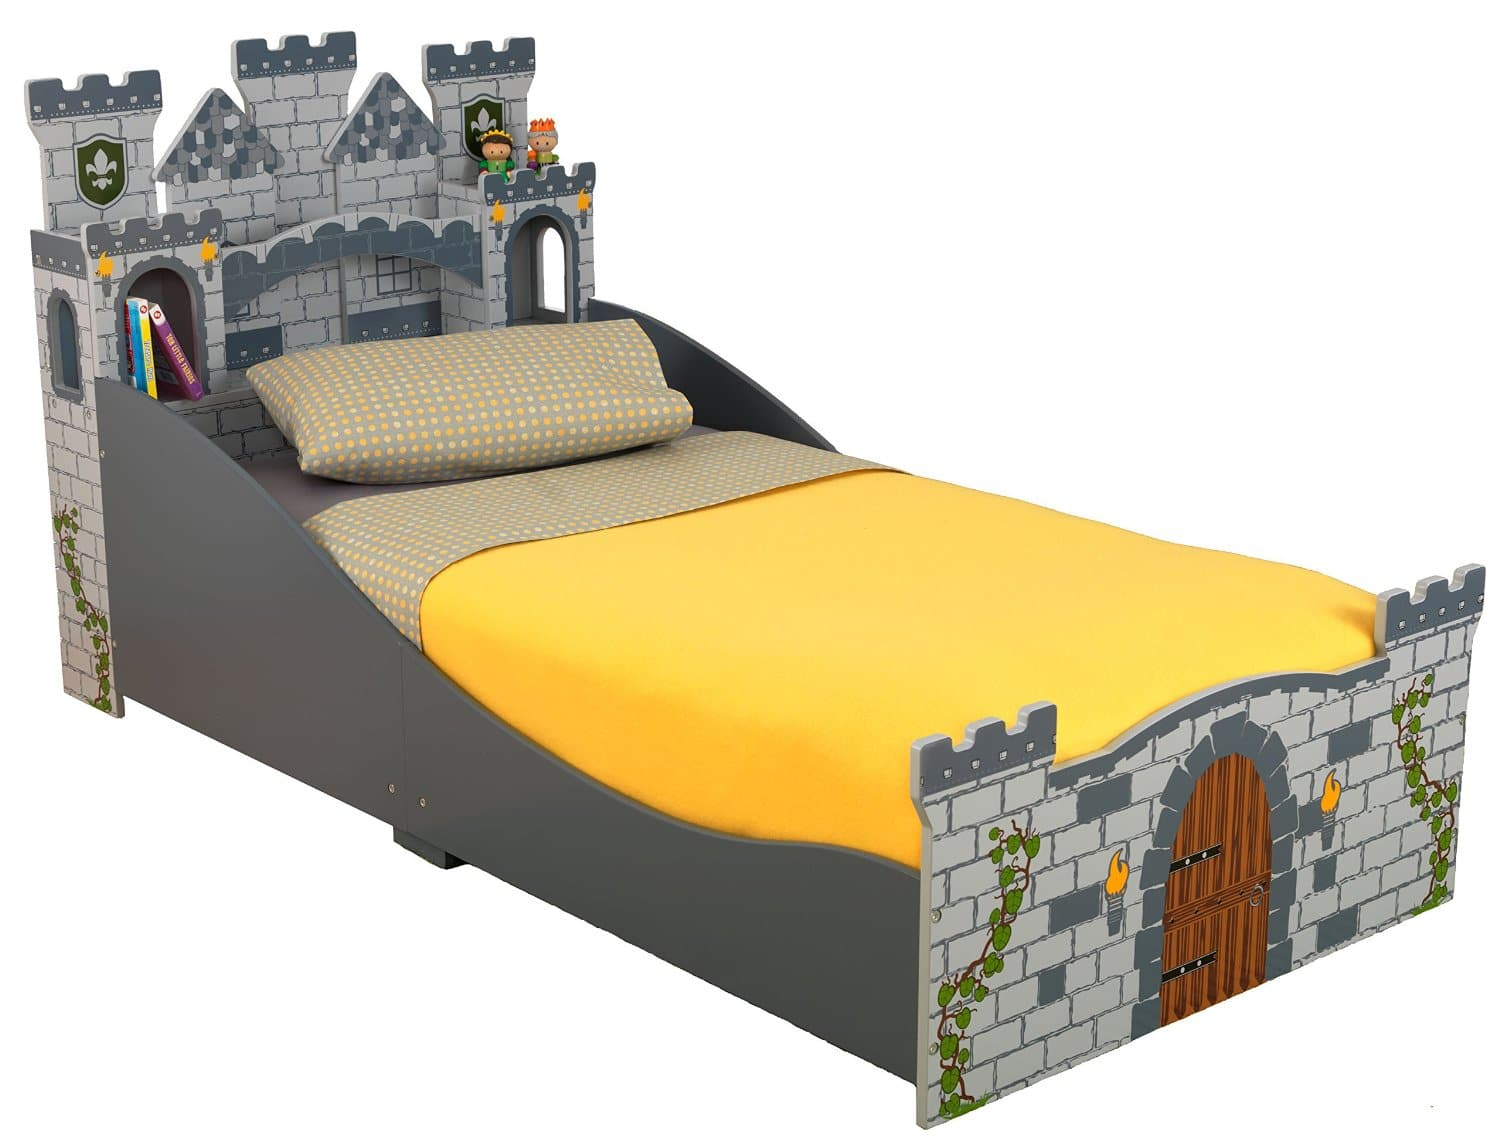 KidKraft Toddler Medieval Castle Bed $49.99 @ amazon + fs w/prime